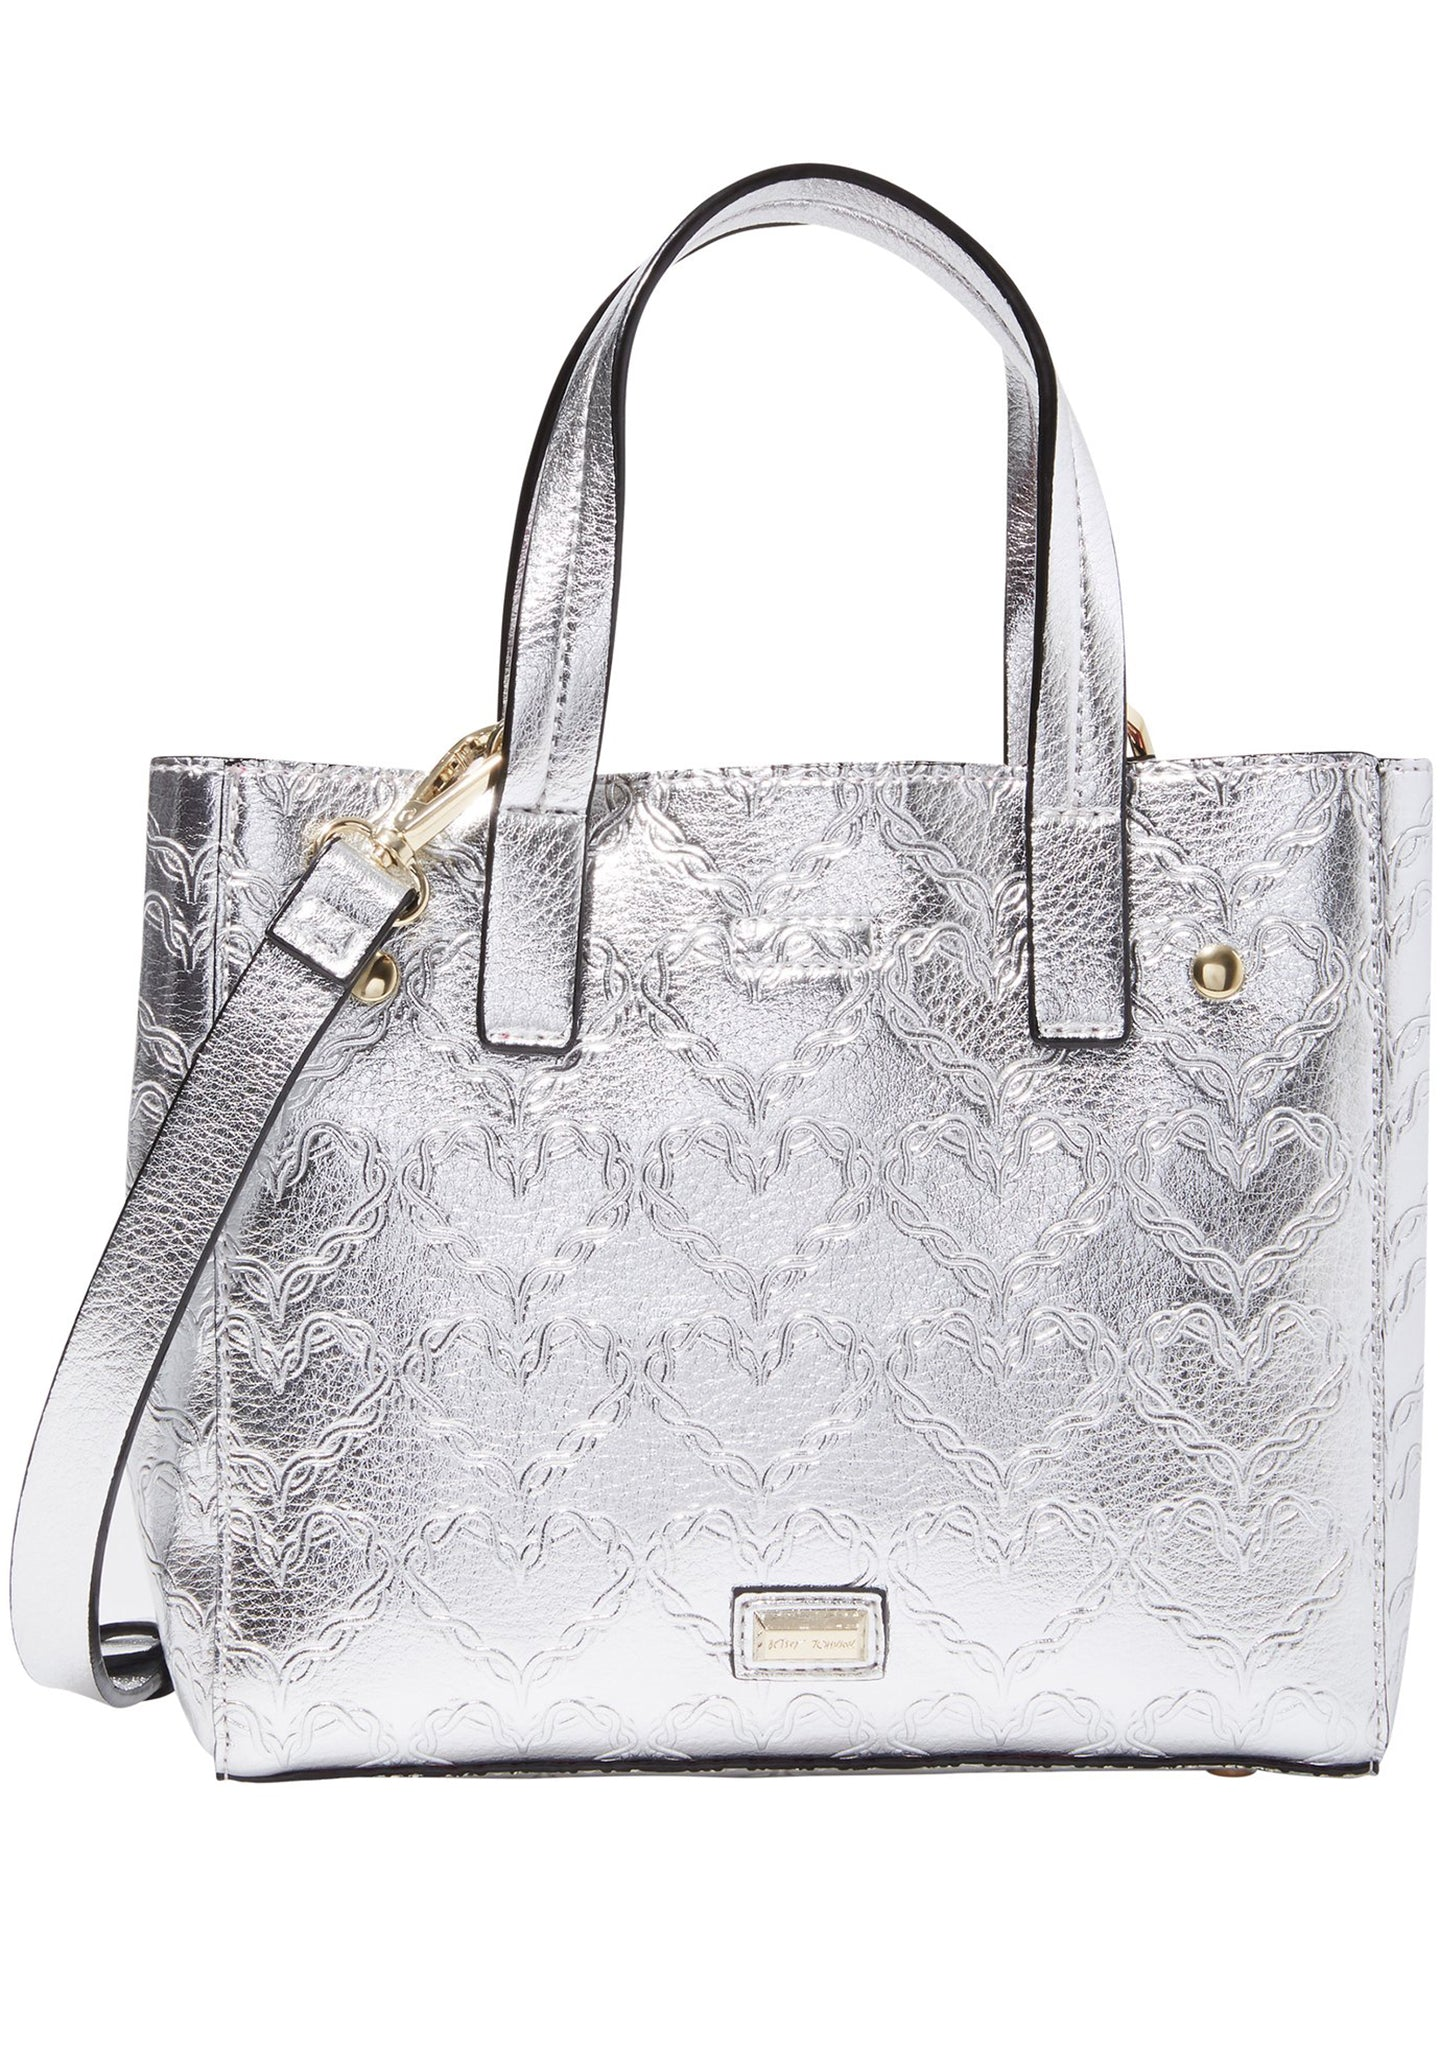 Shop Around the Clock Tote Bag in Silver